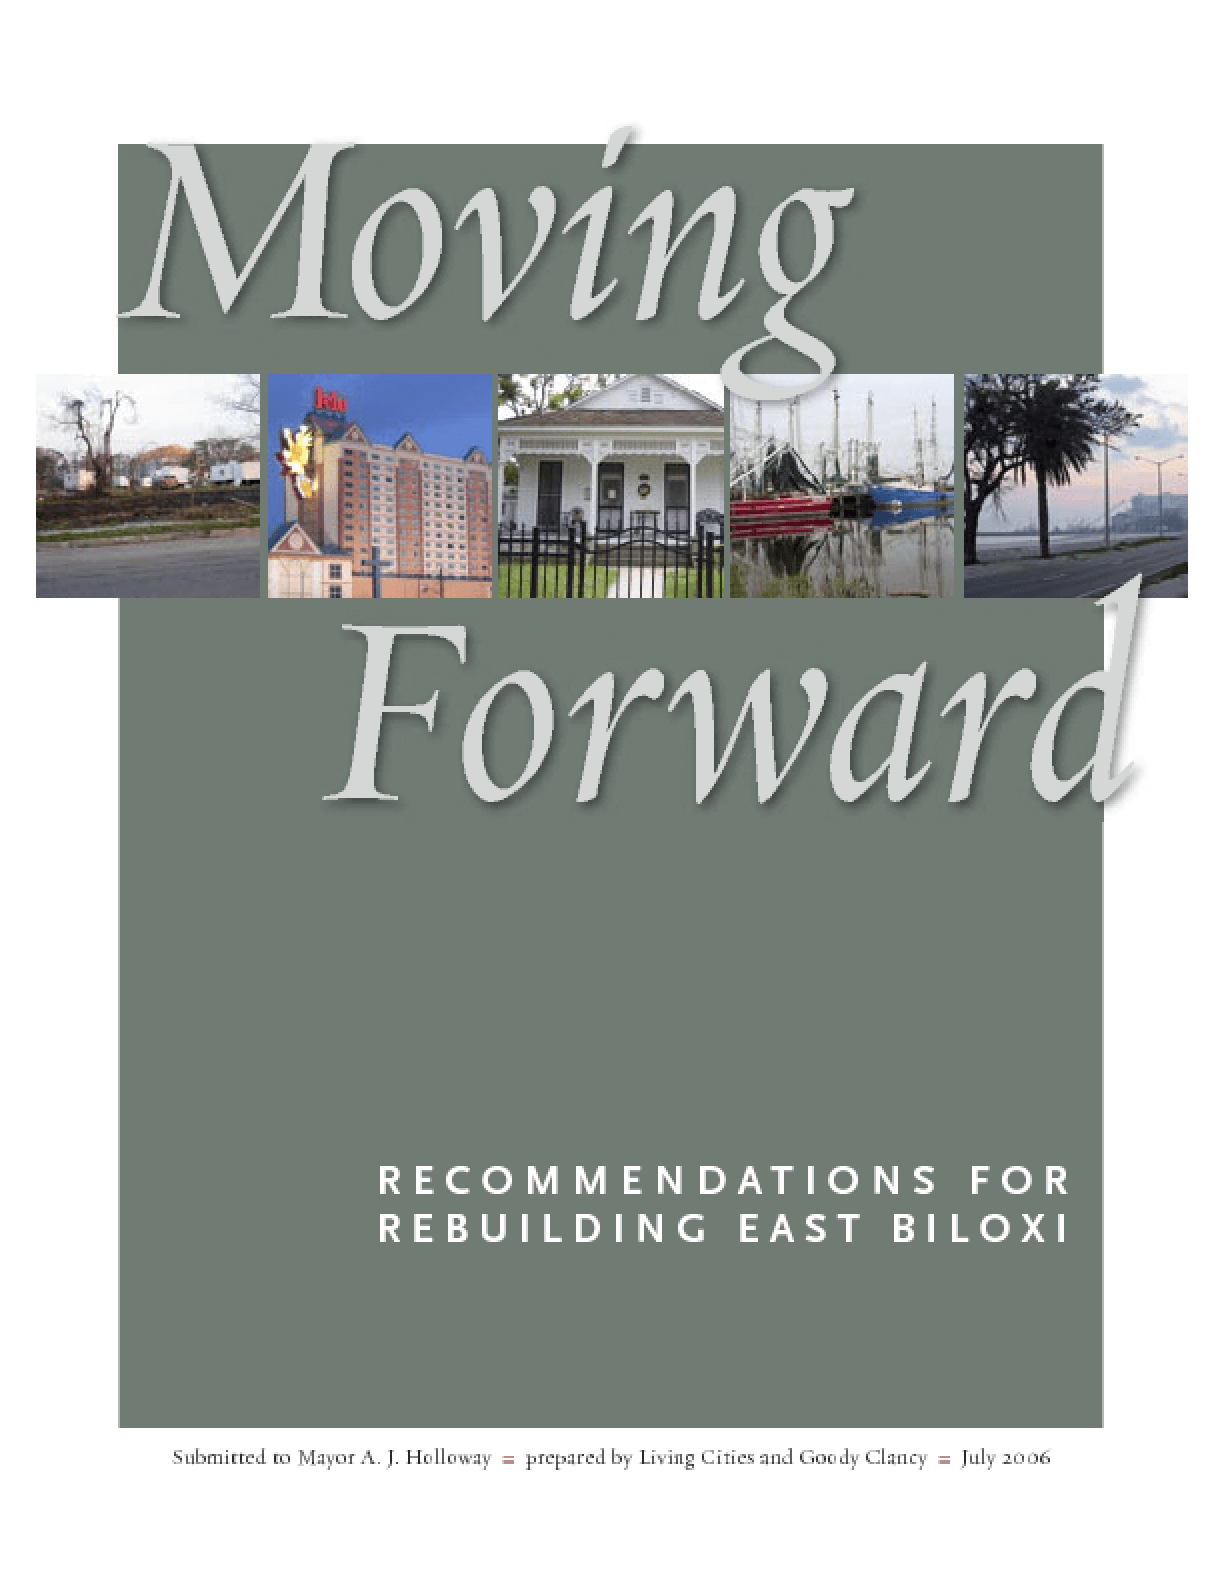 Moving Forward: Recommendations for Rebuilding East Biloxi